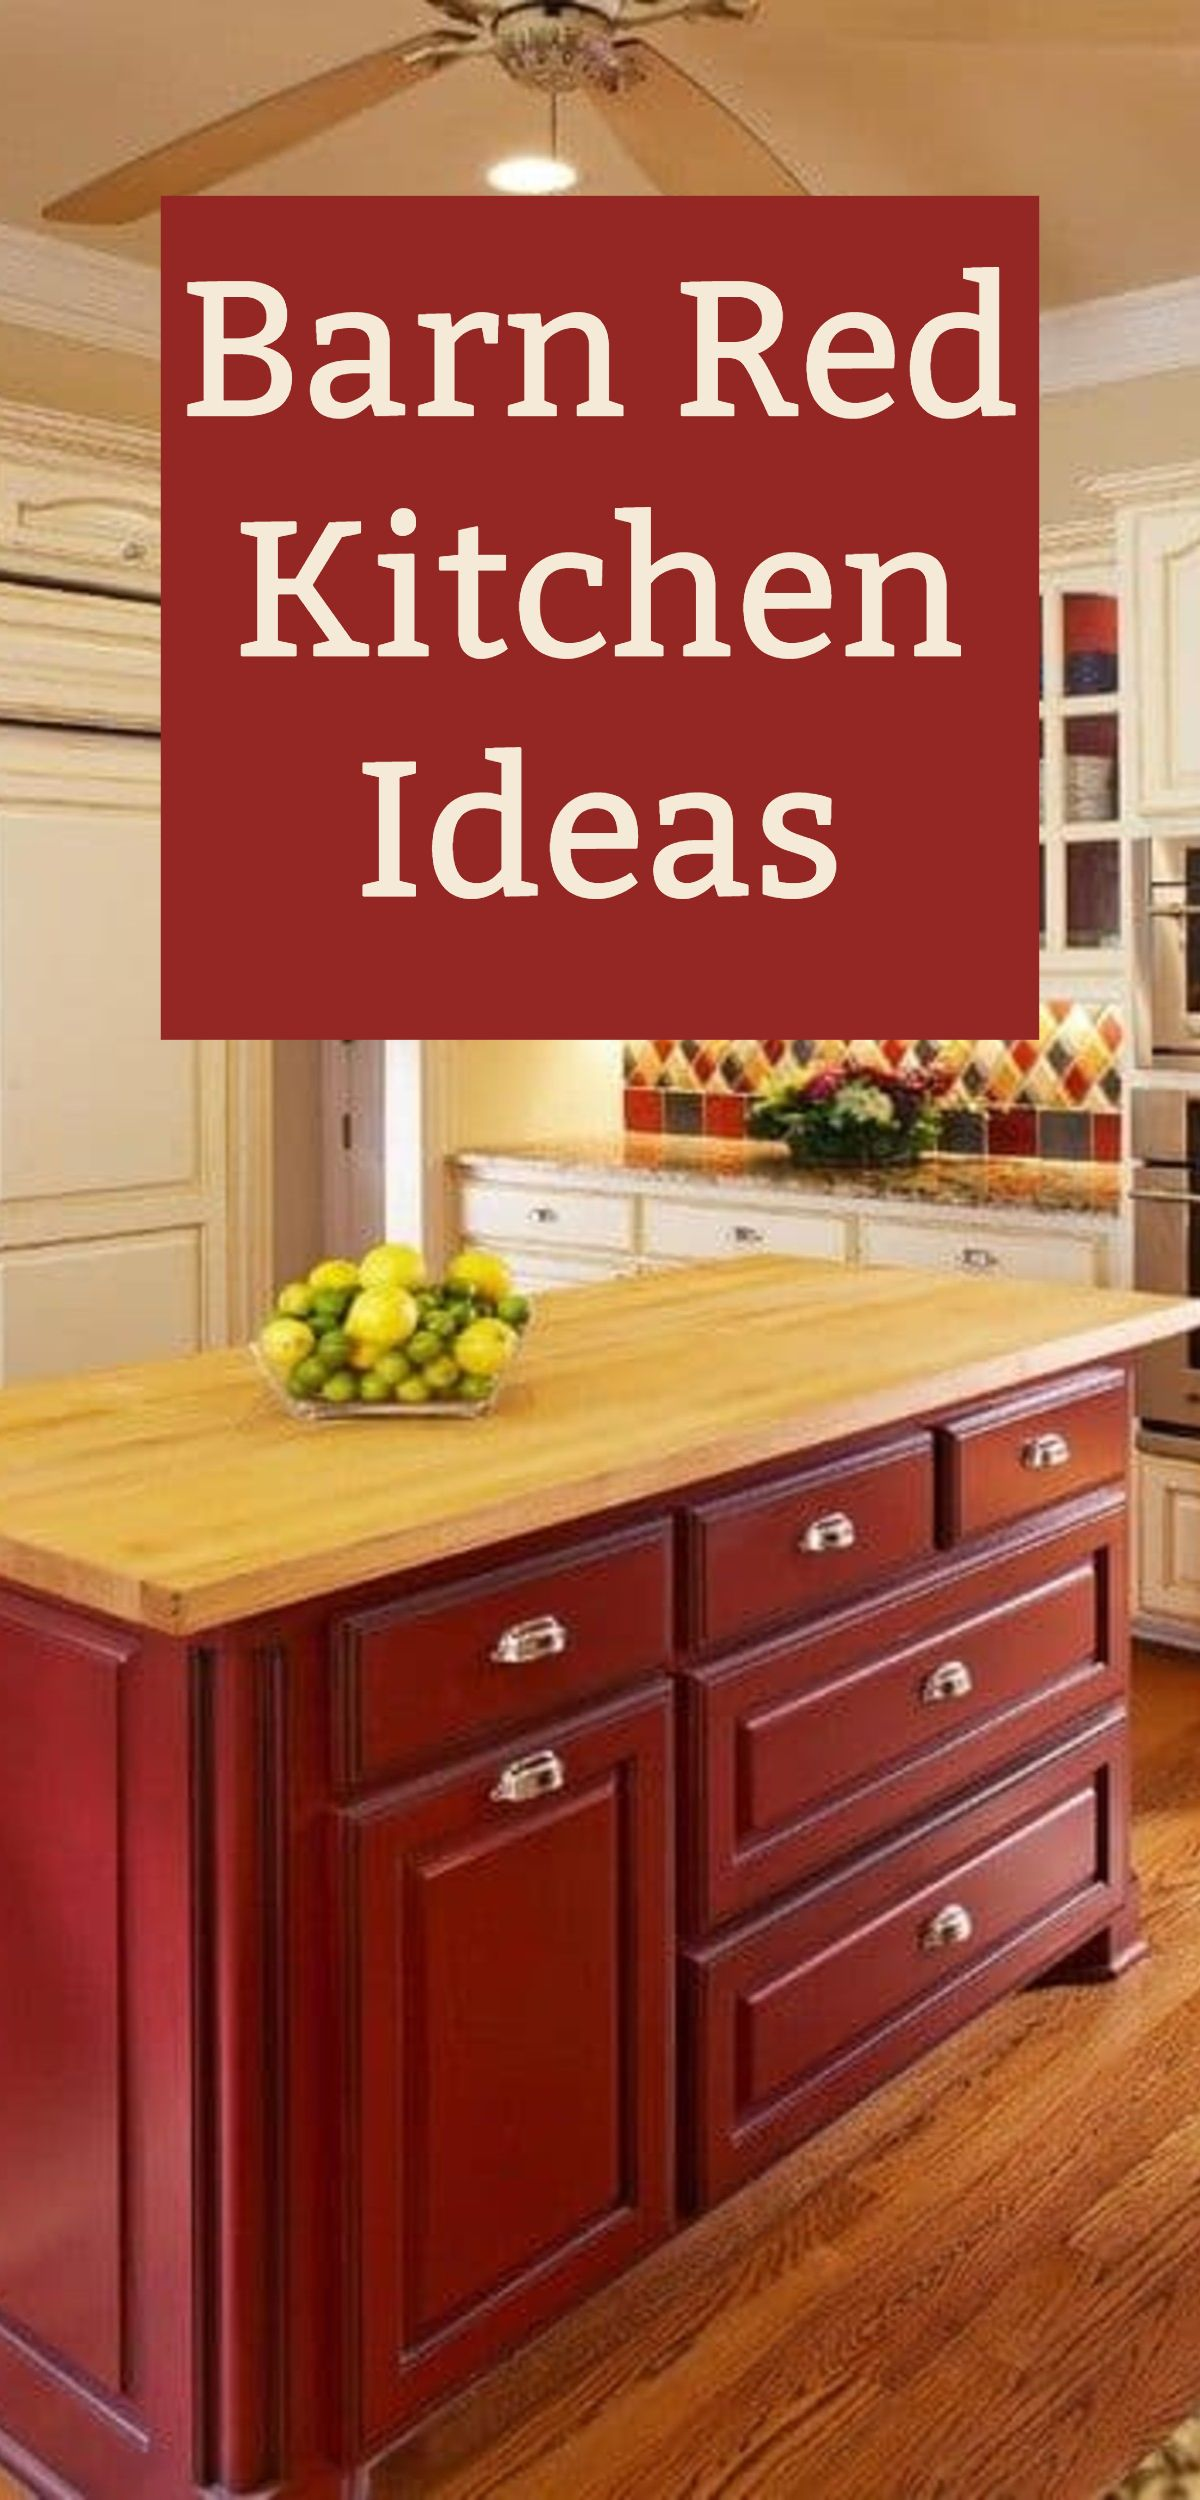 Barn Red Kitchen Decor Ideas Hip Hoo Rae In 2020 Red Kitchen Decor Kitchen Accessories Decor Barn Red Kitchen